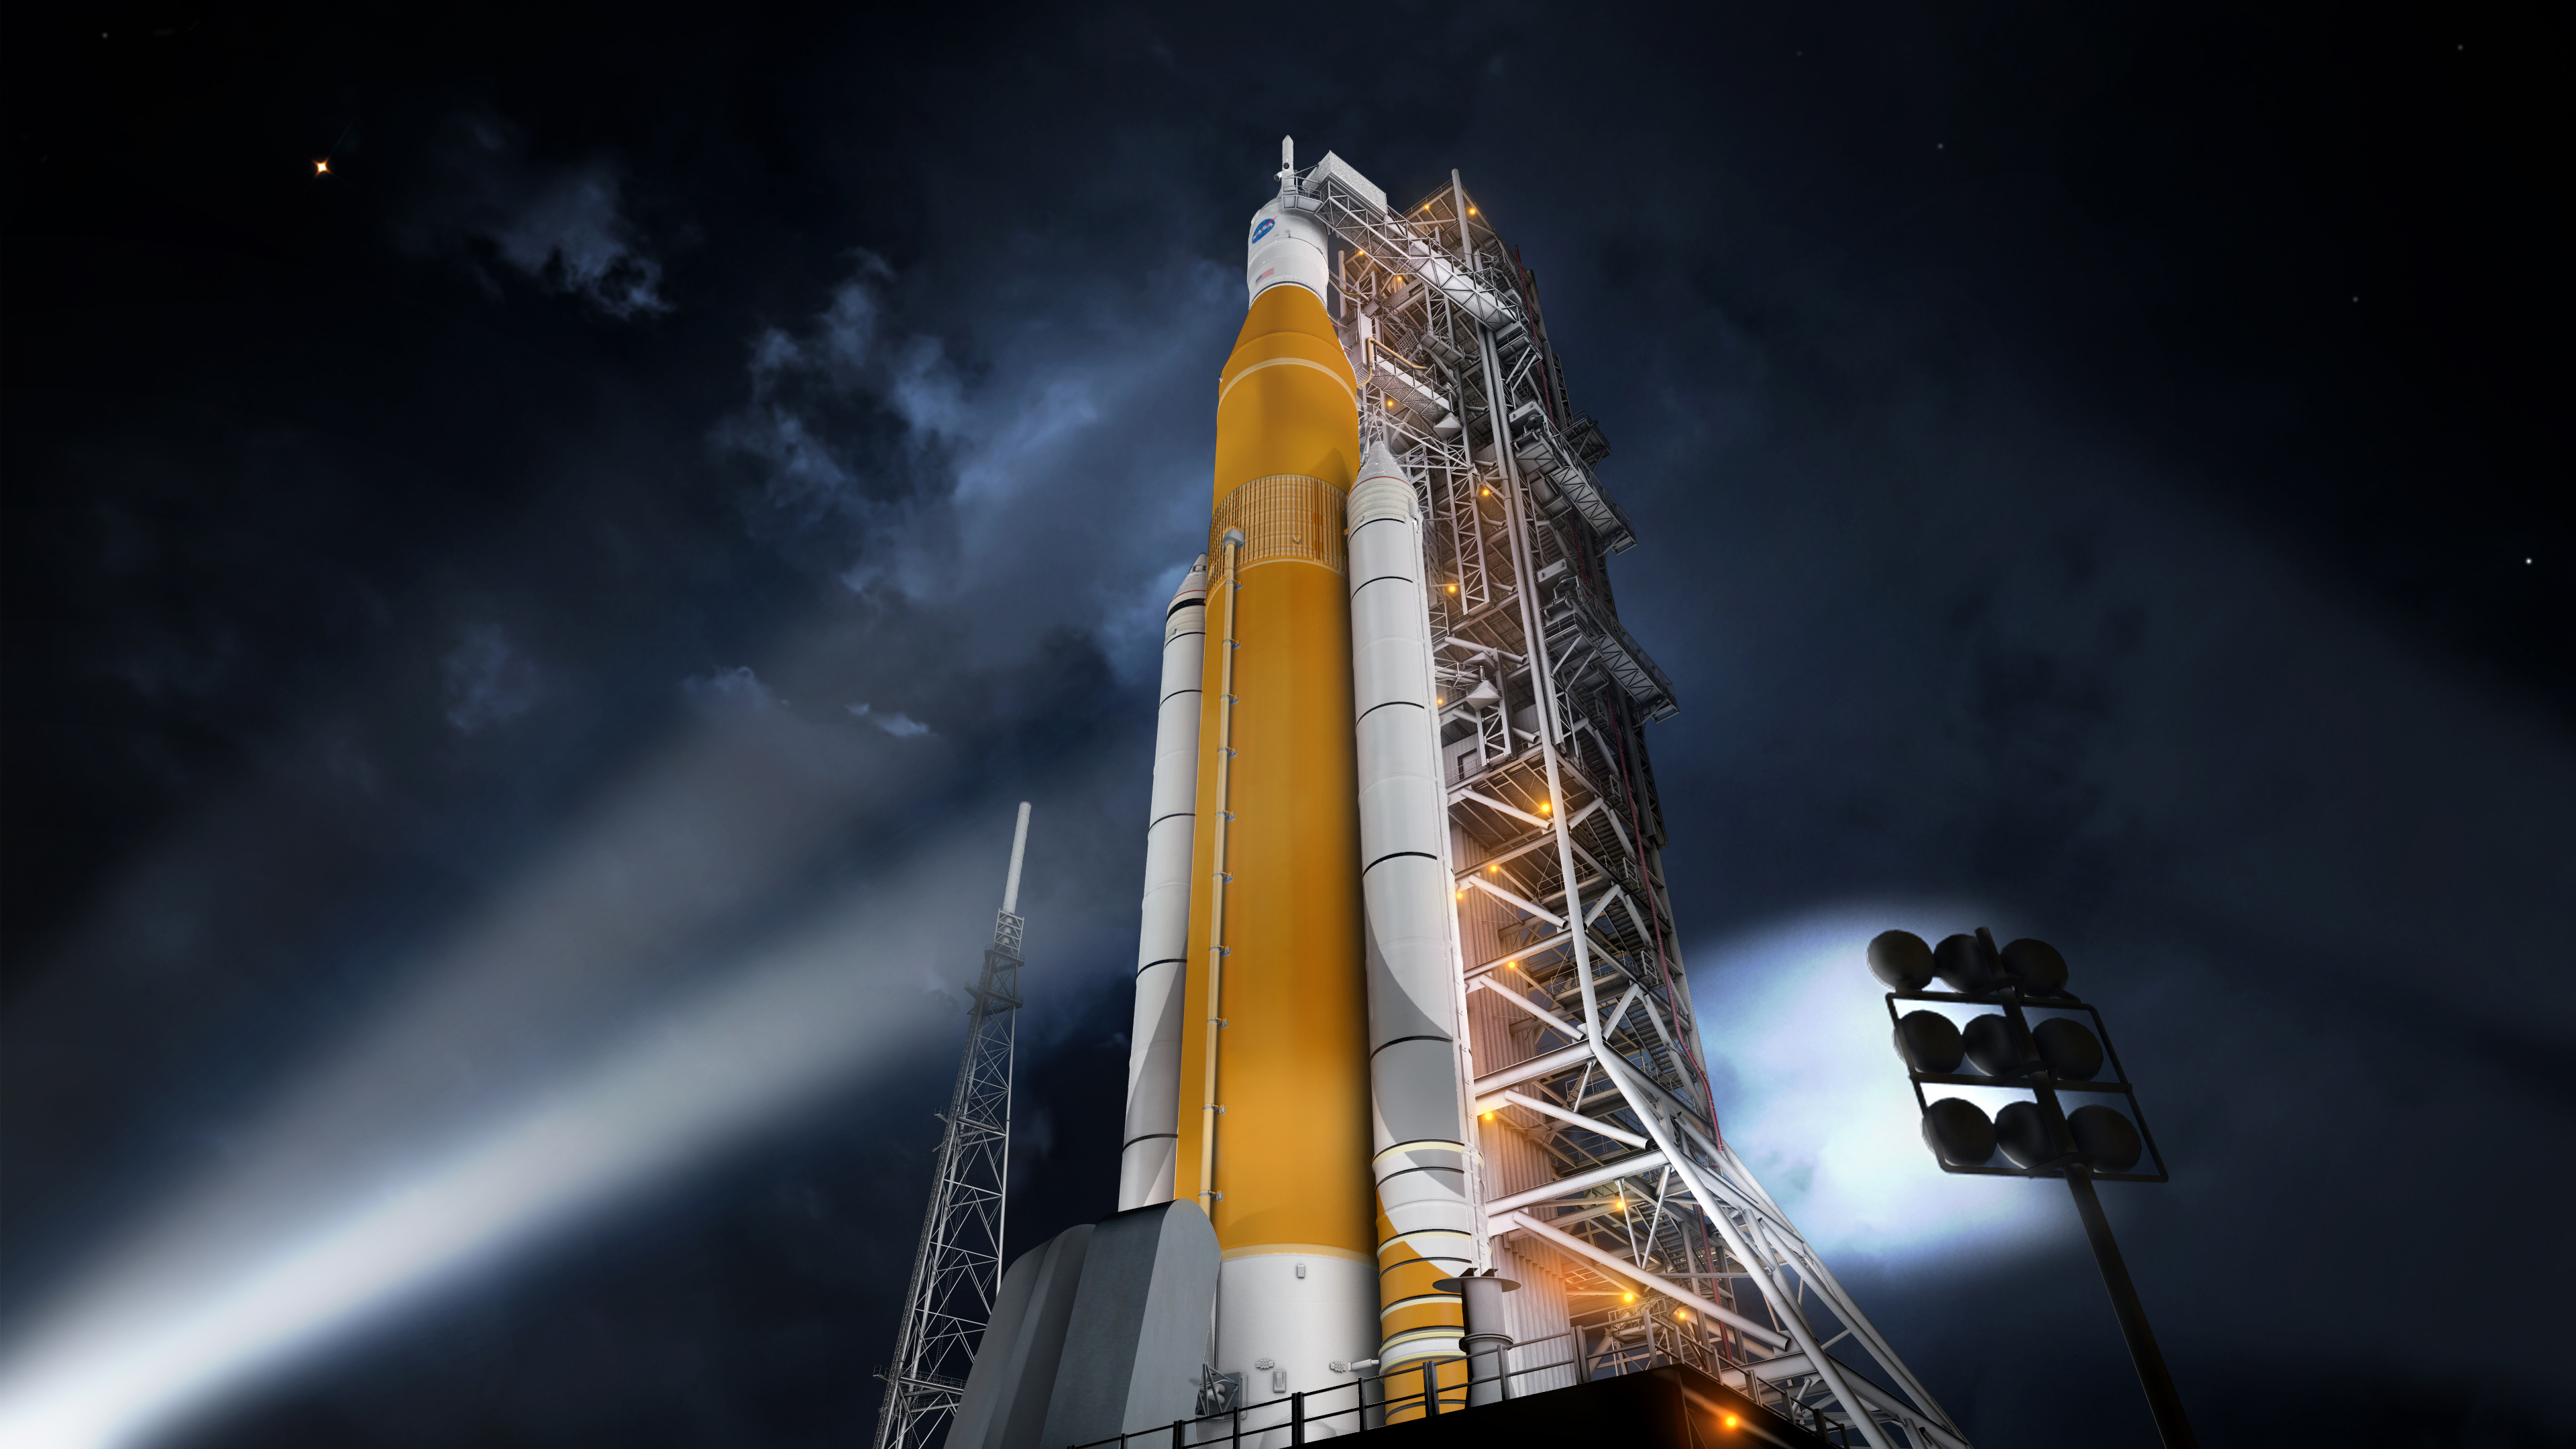 Op-Ed: Another SLS delay and NASA's habit of making space 'boring' | SOFREP